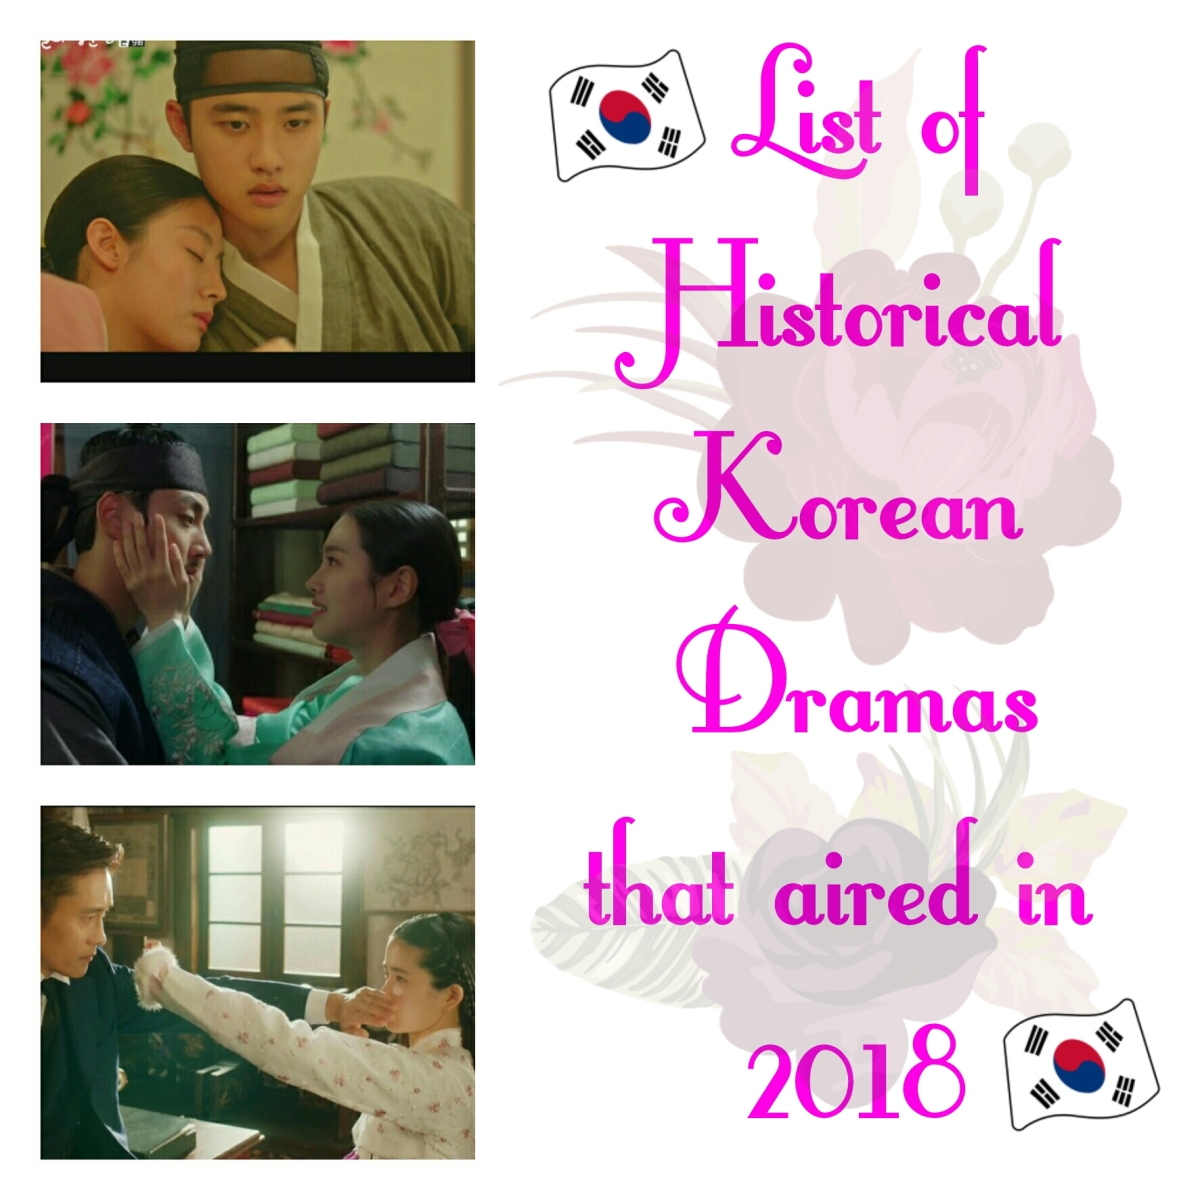 List of Historical Korean Dramas that aired in 2018